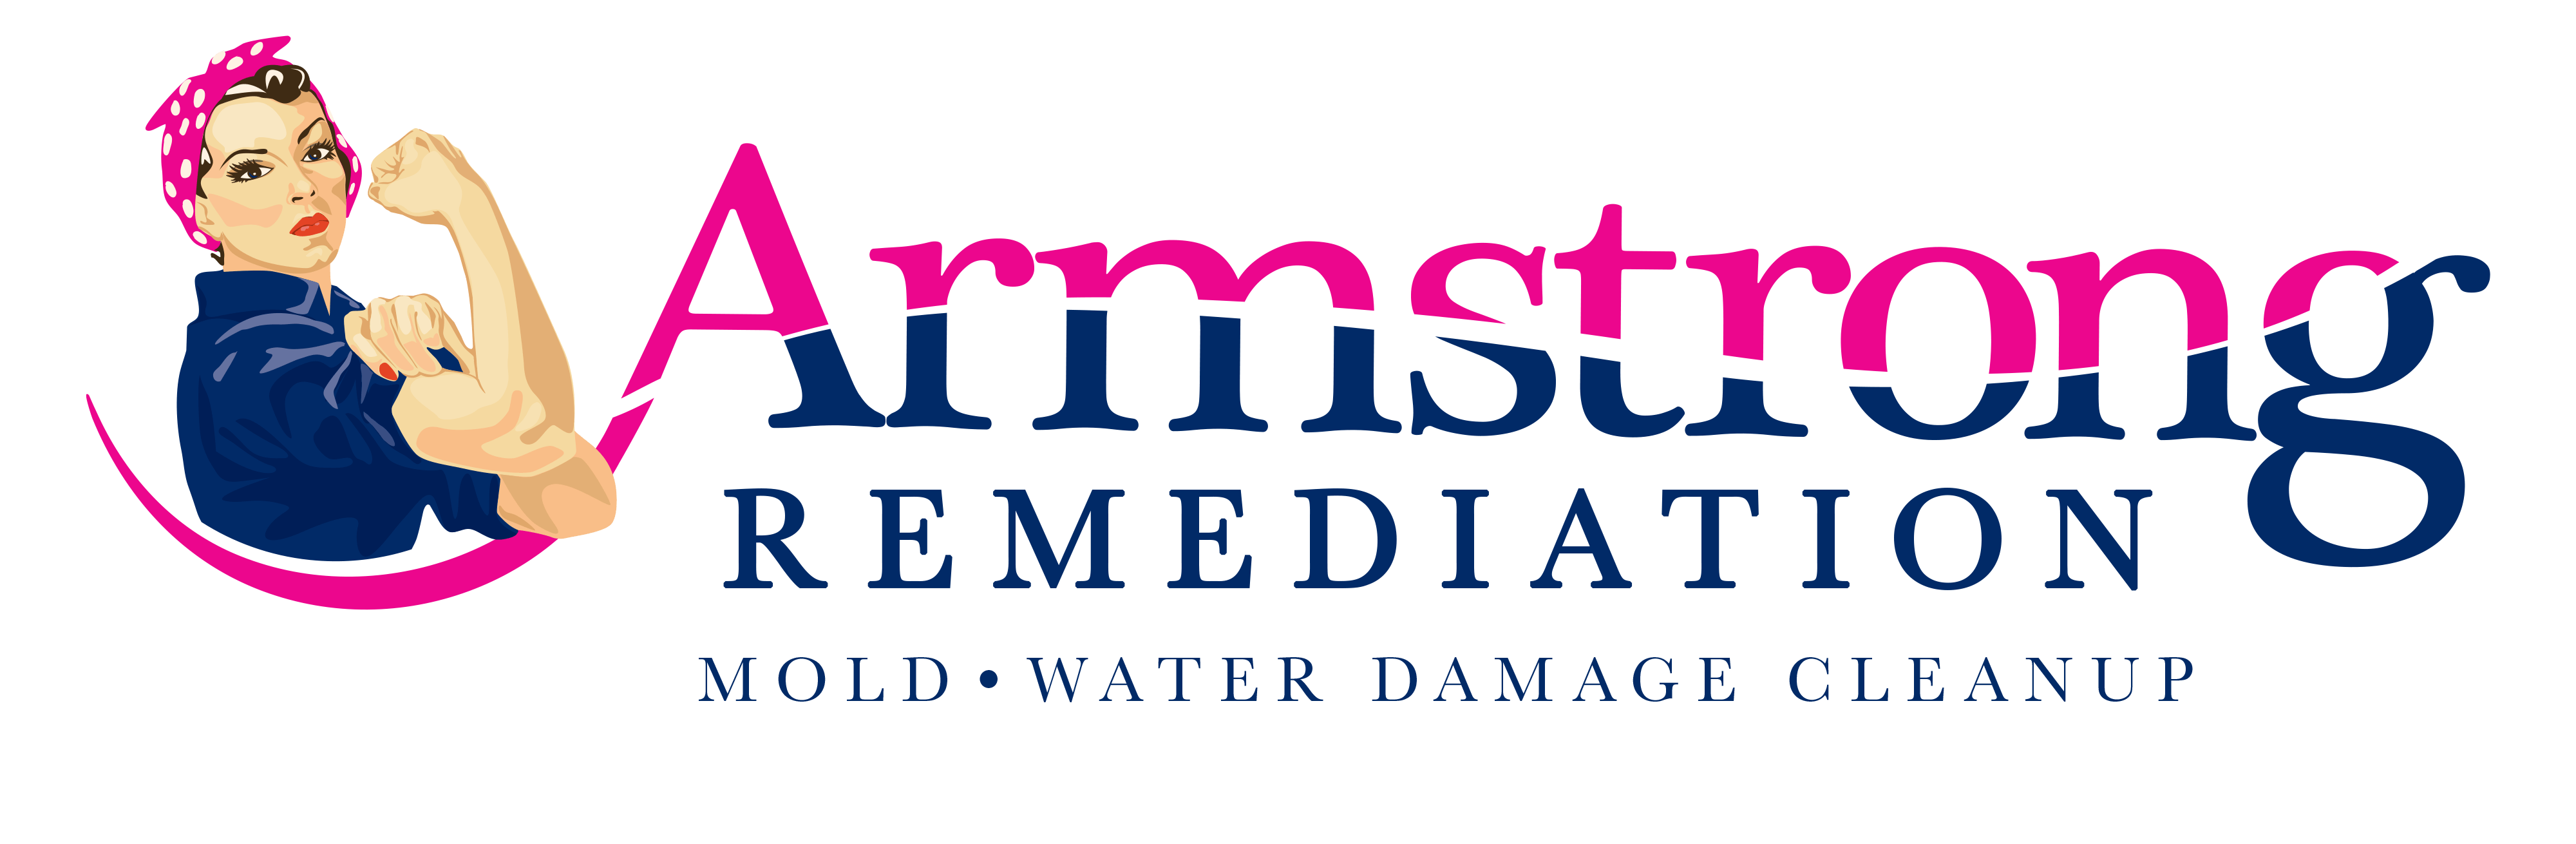 Armstrong Remediation Logo